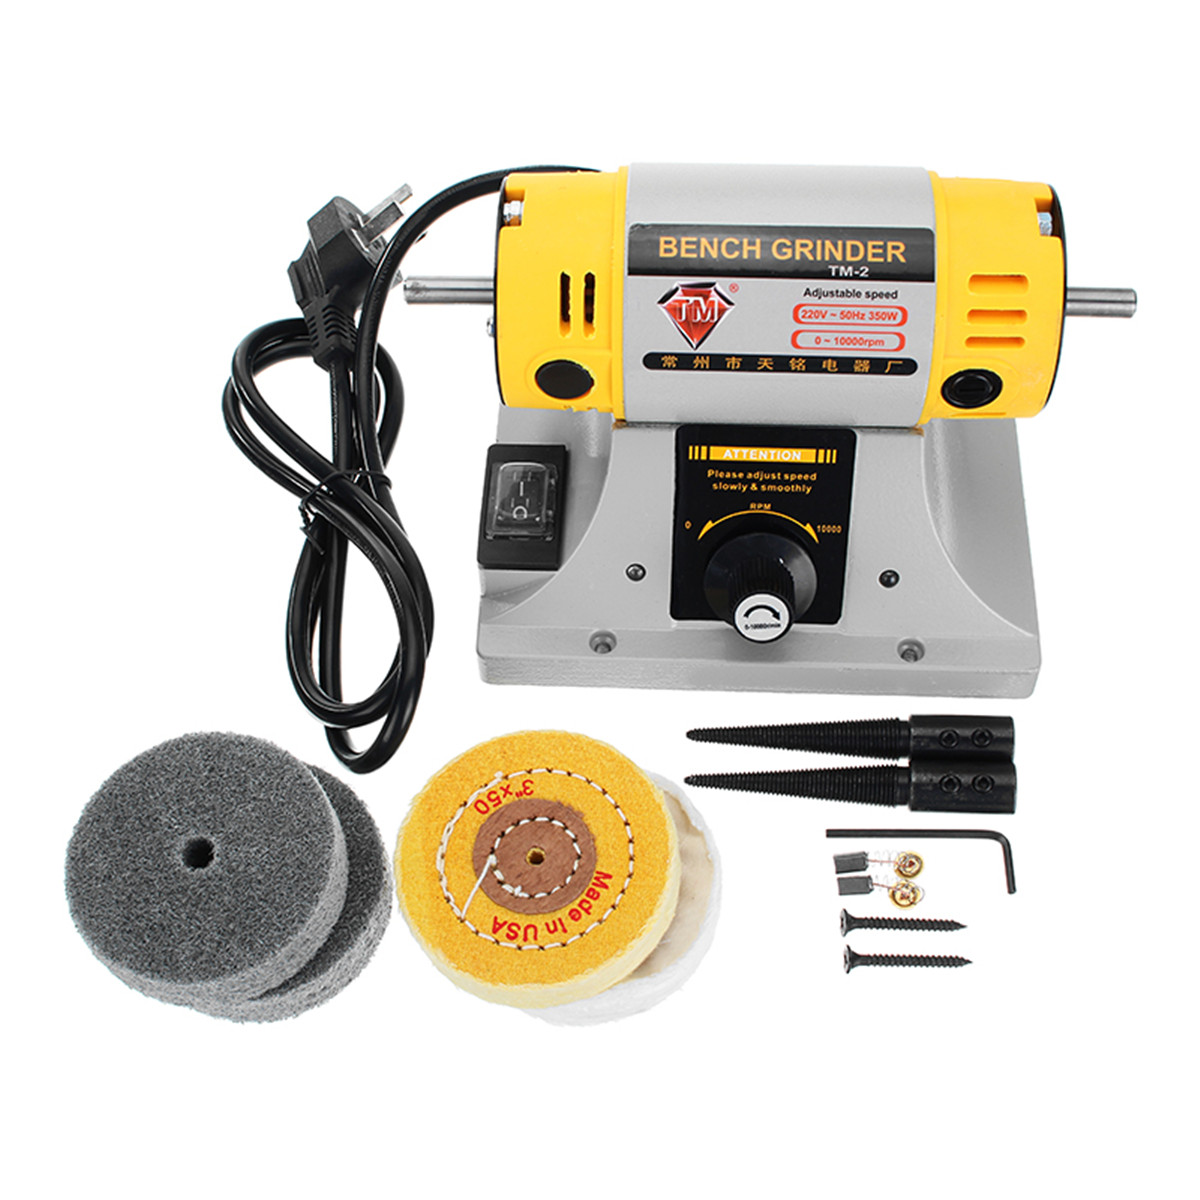 Image 2 - 220V 350W Polishing Machine for Jewelry Dental Bench Lathe Machine Motor Grinder With Accessories-in Polishers from Tools